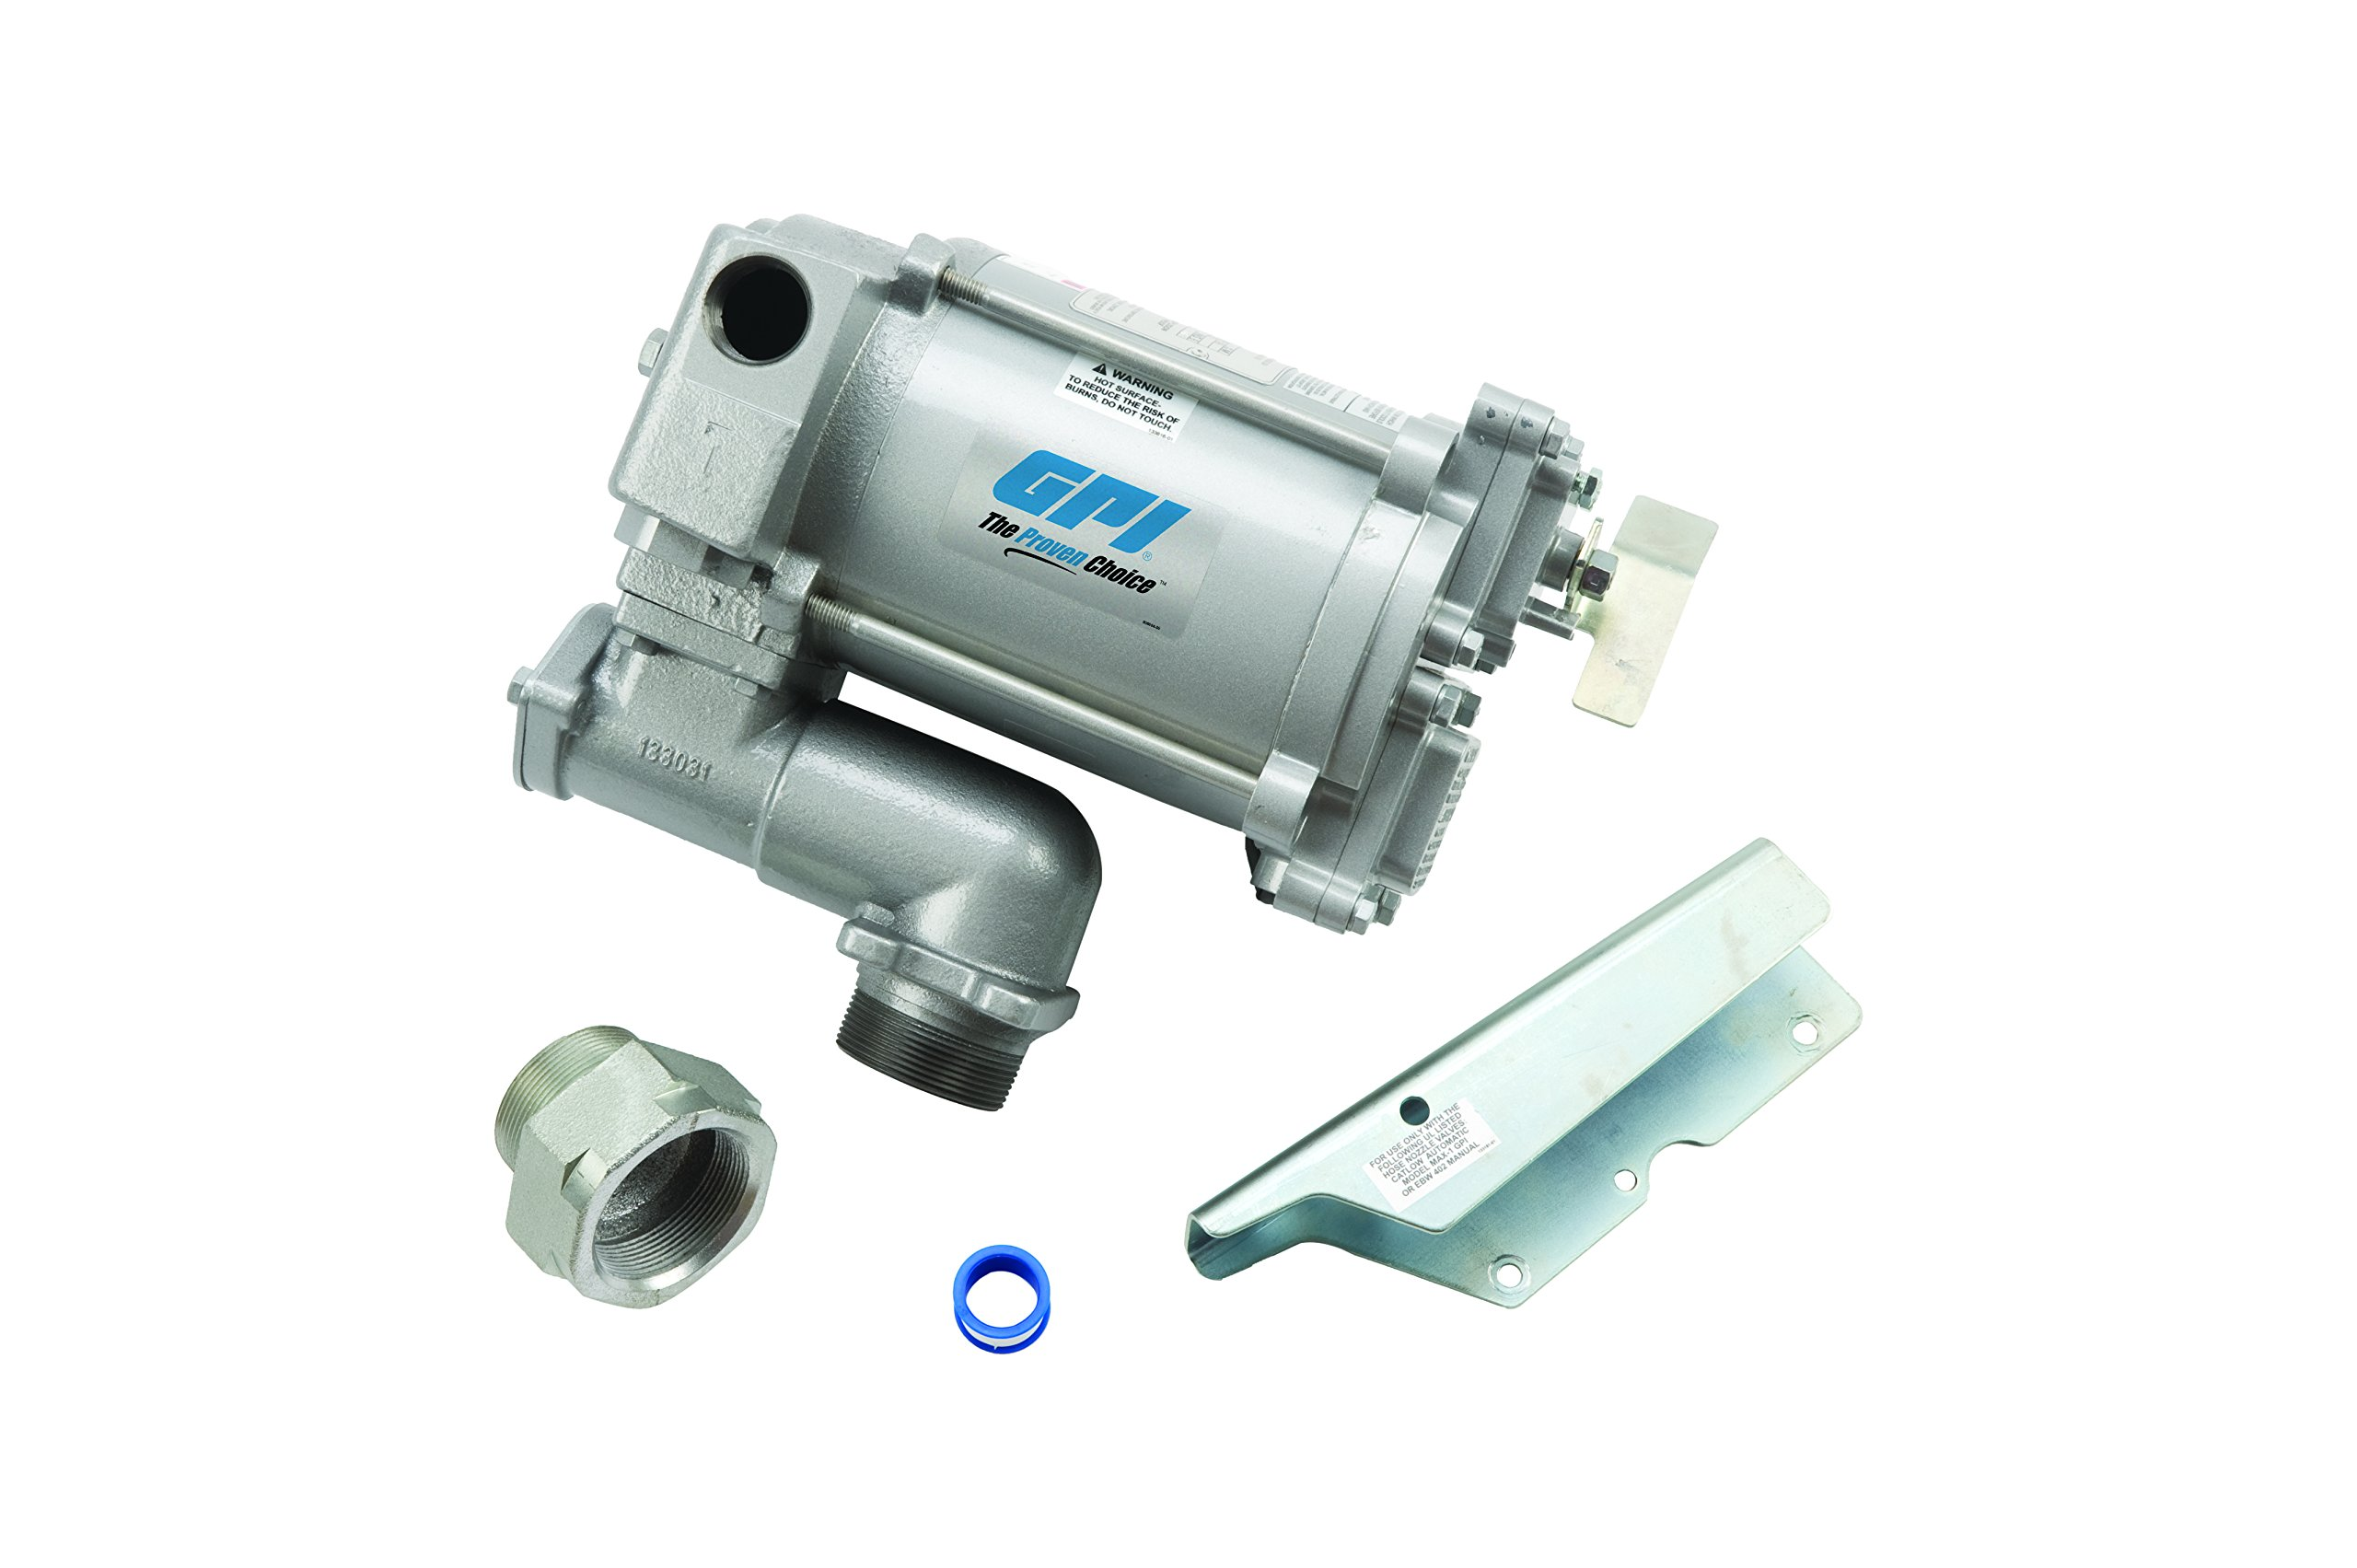 GPI 133200-03, M-3120-PO High Flow Cast Iron Fuel Transfer Pump 20 GPM, 115-VAC, 1-Inch Outlet, 1-Inch X 0.75-Inch Reducer Bushing, Pump Only